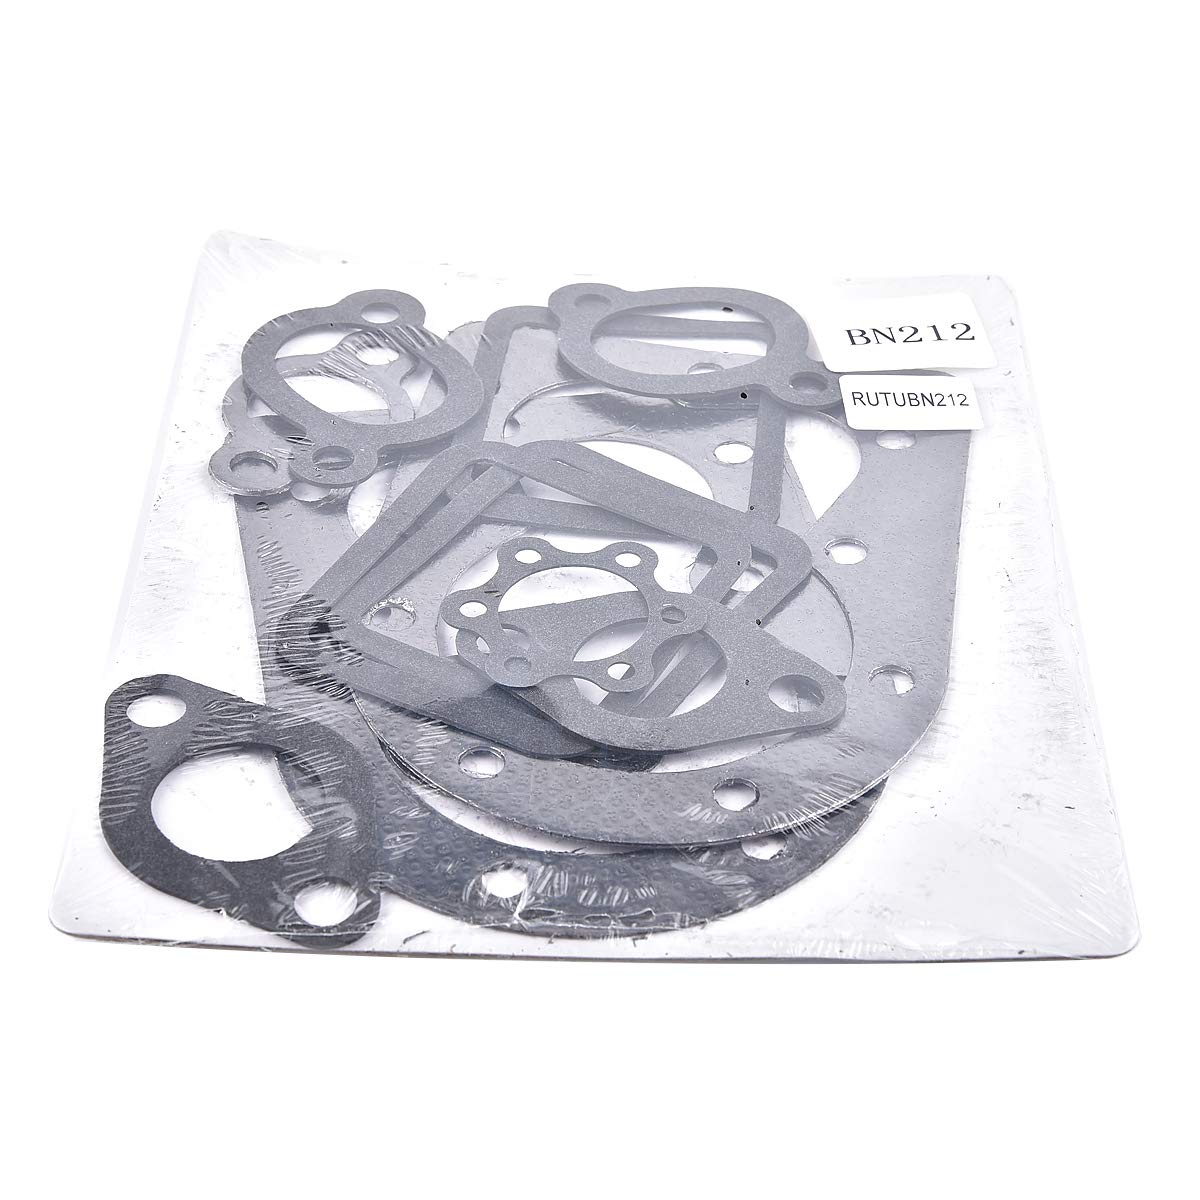 New Valve Grind Head Gasket Kit for Onan BF-B43-48 P216 P218 P220 Engine Replaces 110-3181 1103181